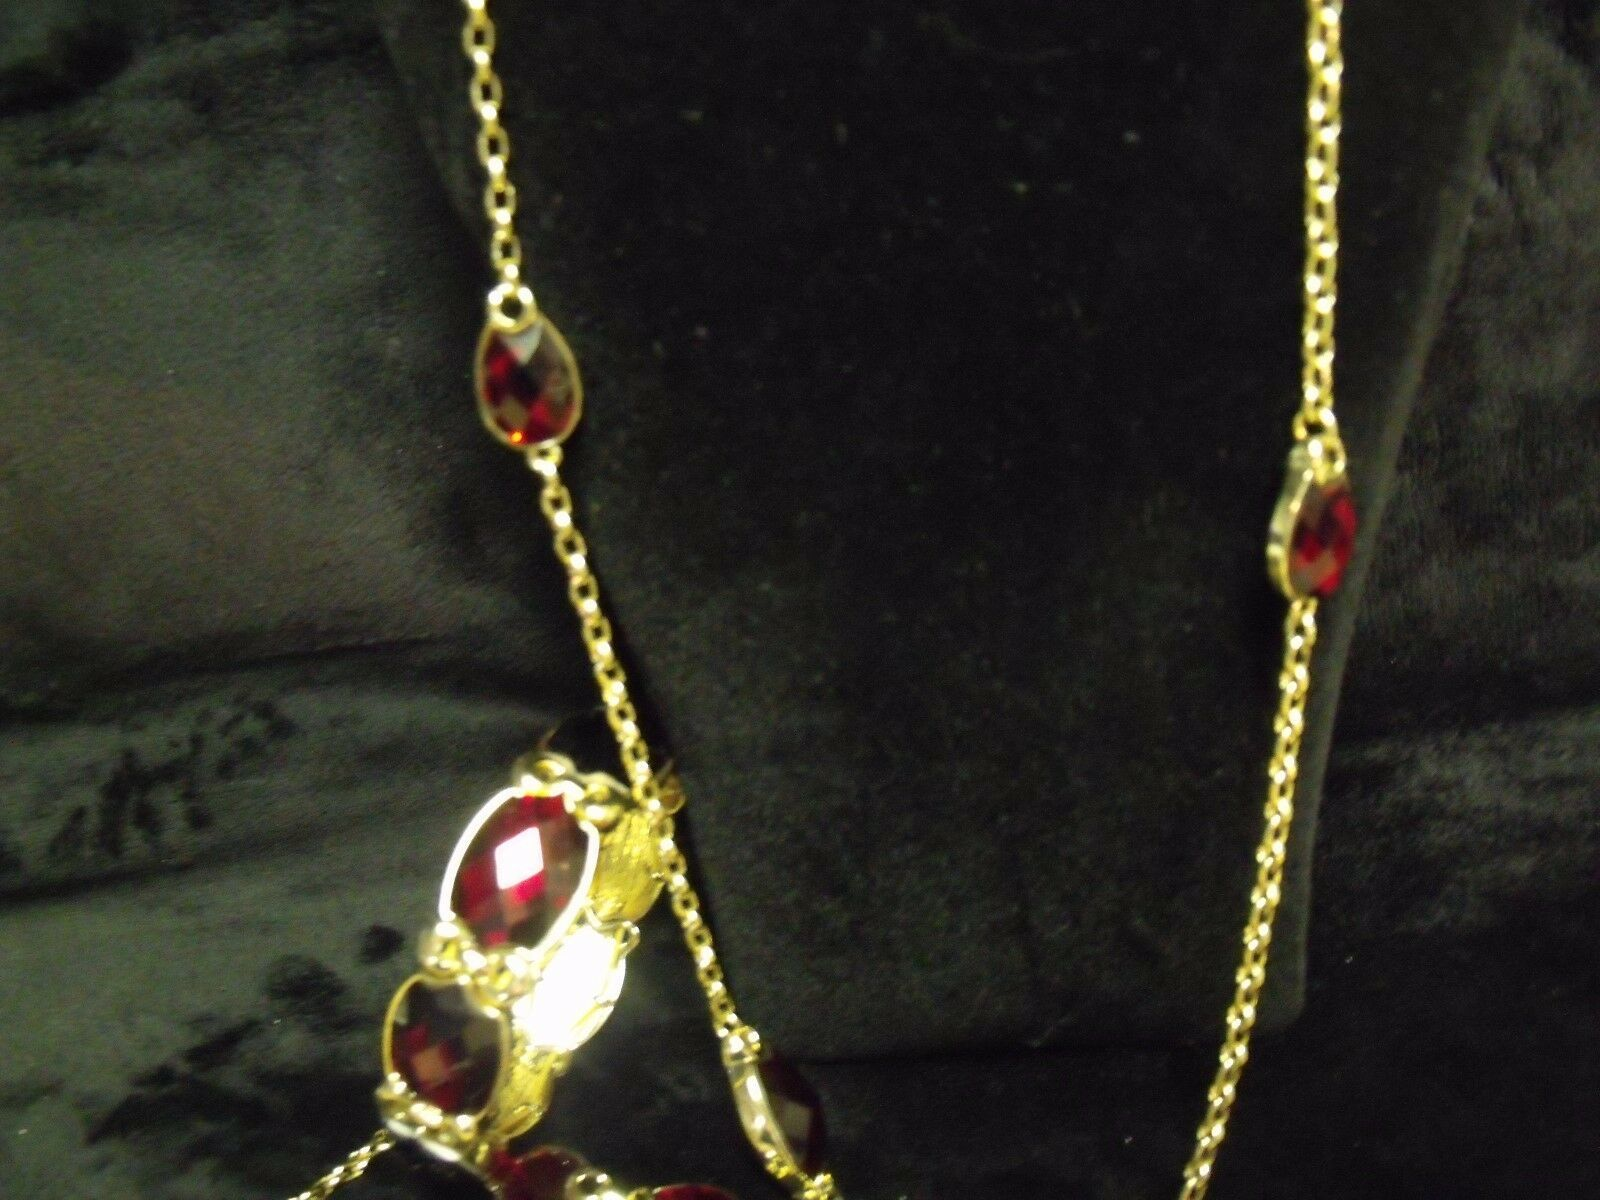 VINTAGE NAPIER RUBY LUCITE RHINESTONES AND GOLDTONE NECKLACE / BRACELET SET